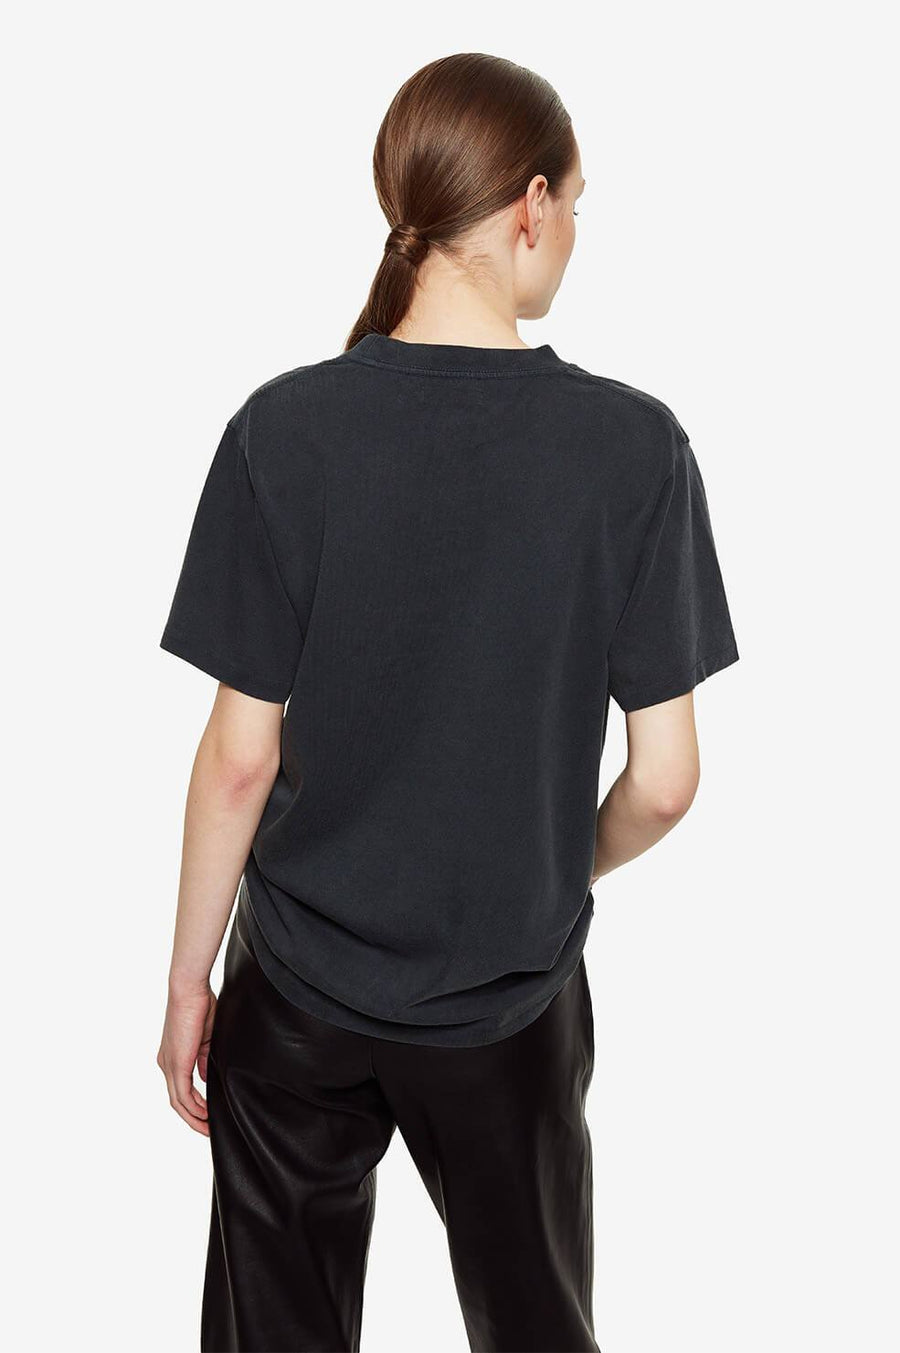 Lili Retro Bing Tee - Washed Black